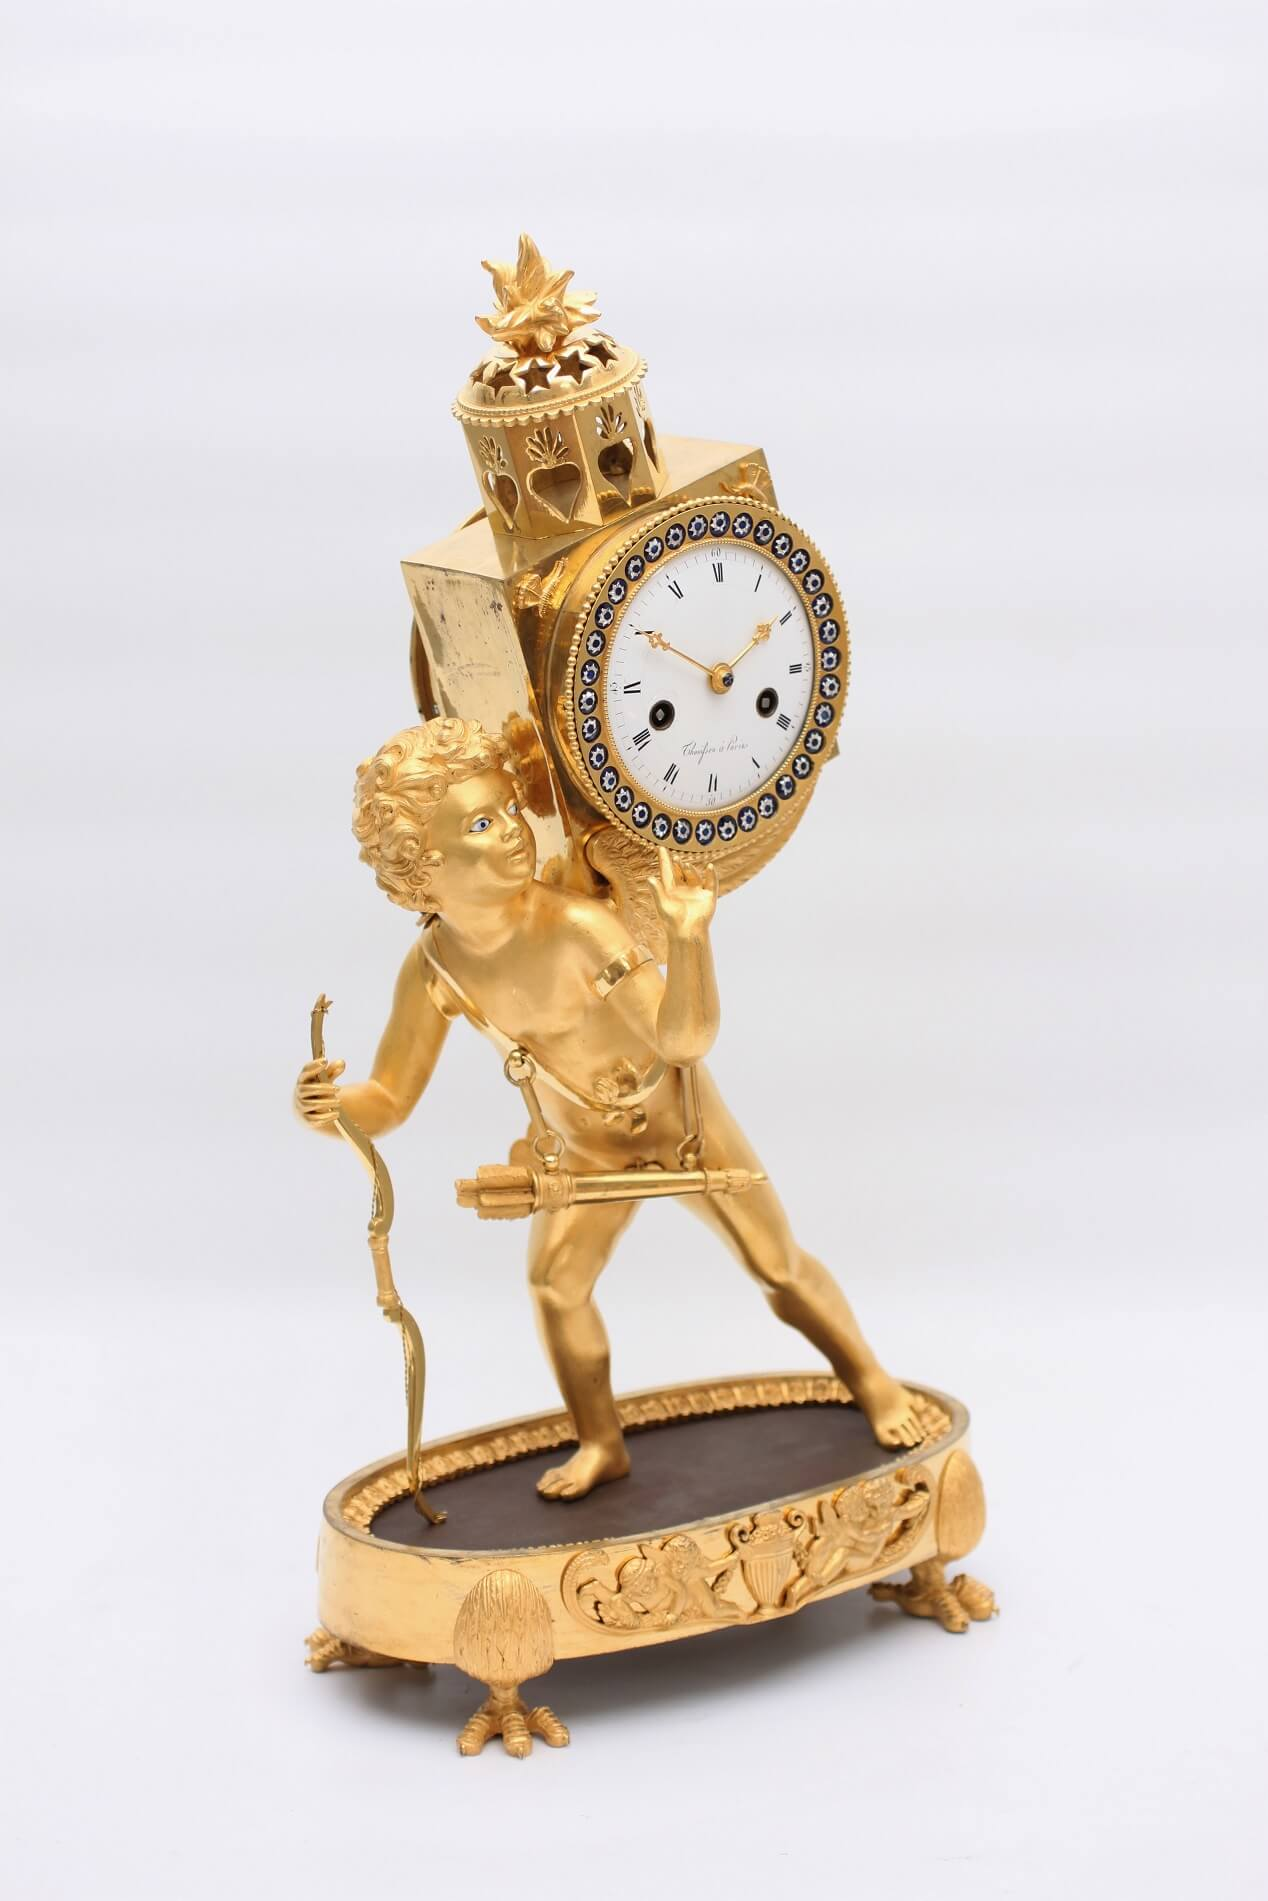 French Ormolu Empire Mantel Clock Laterna Magica 1800